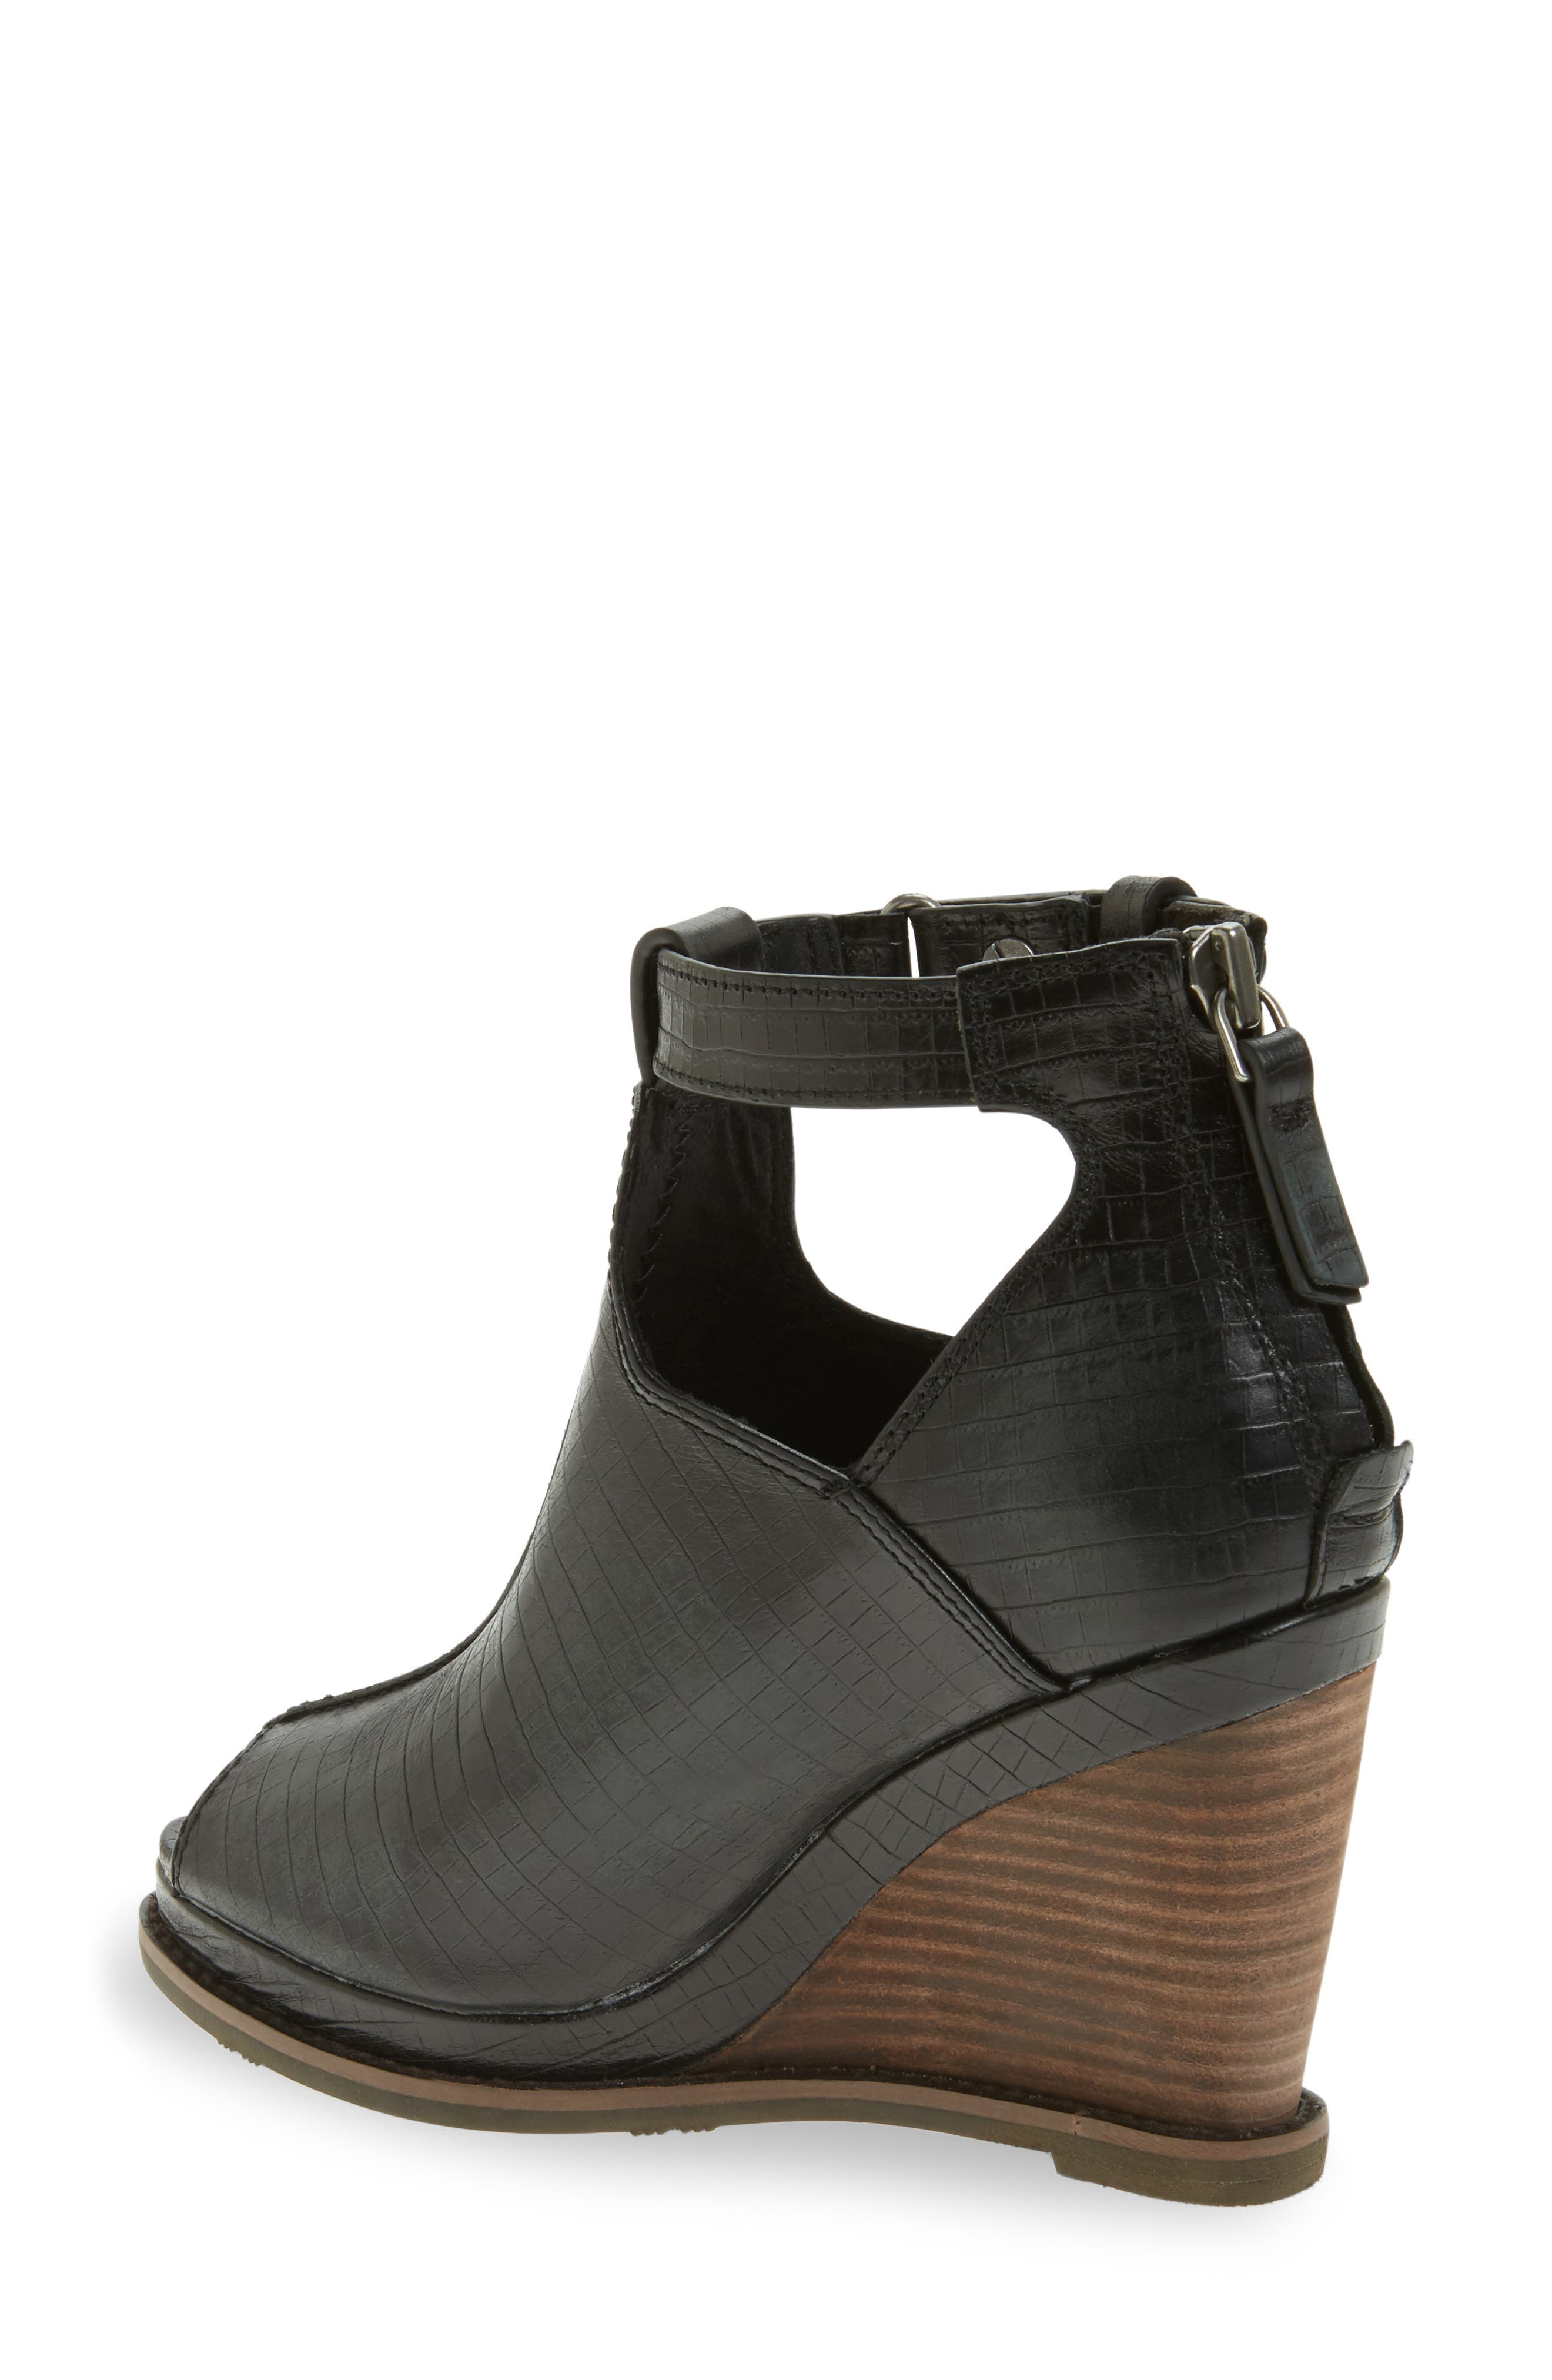 Backstage Wedge Bootie,                             Alternate thumbnail 2, color,                             Black Leather